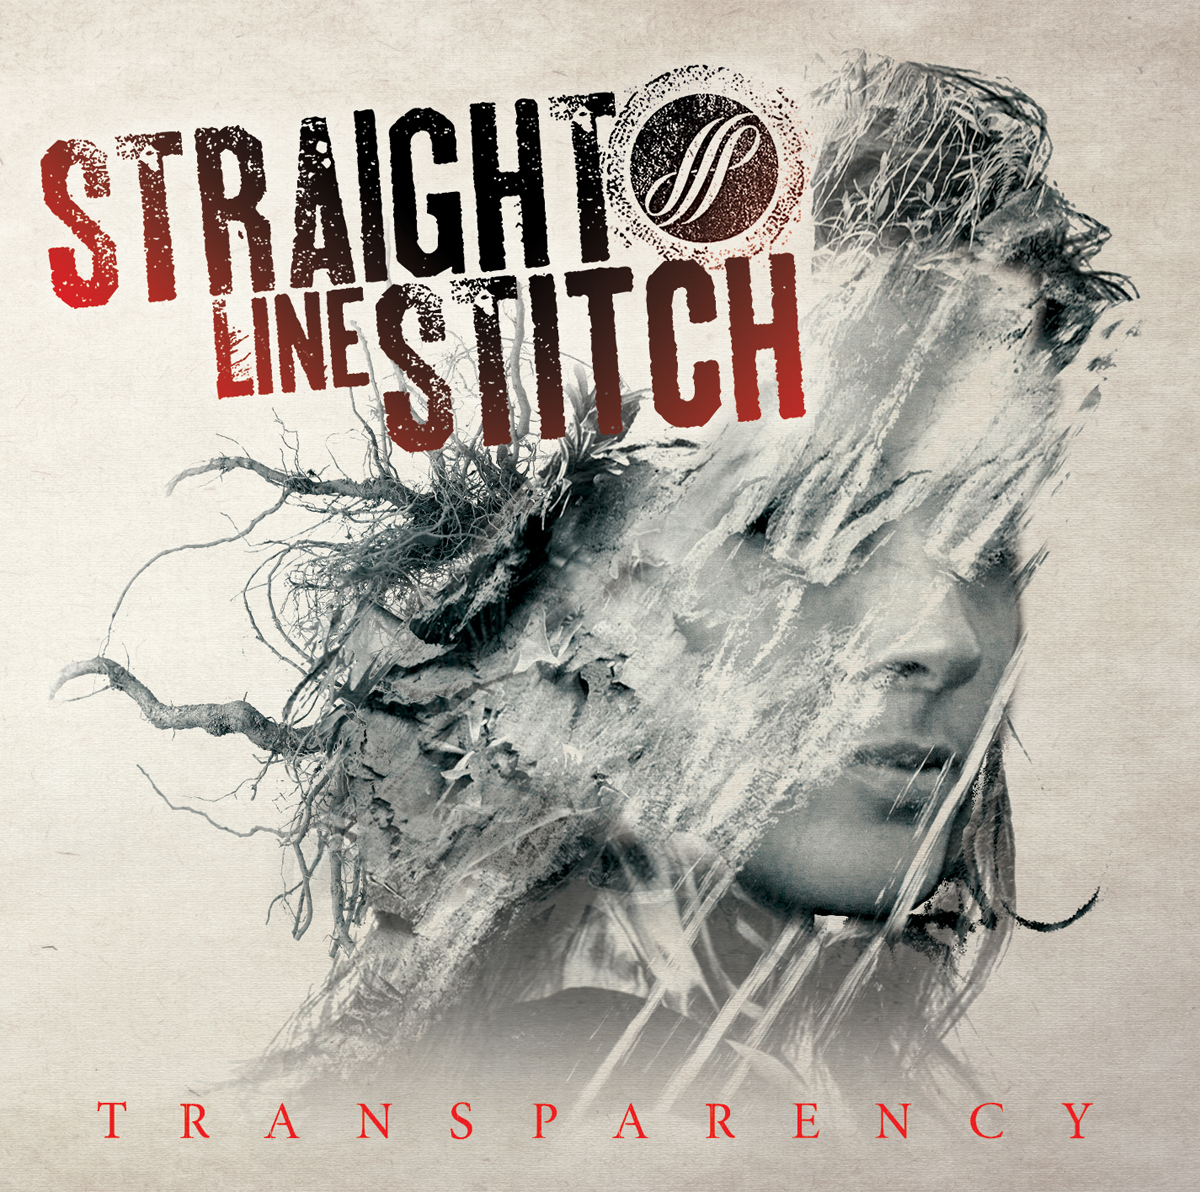 Header-Transparency-StraightLineStitch-AlbumArt